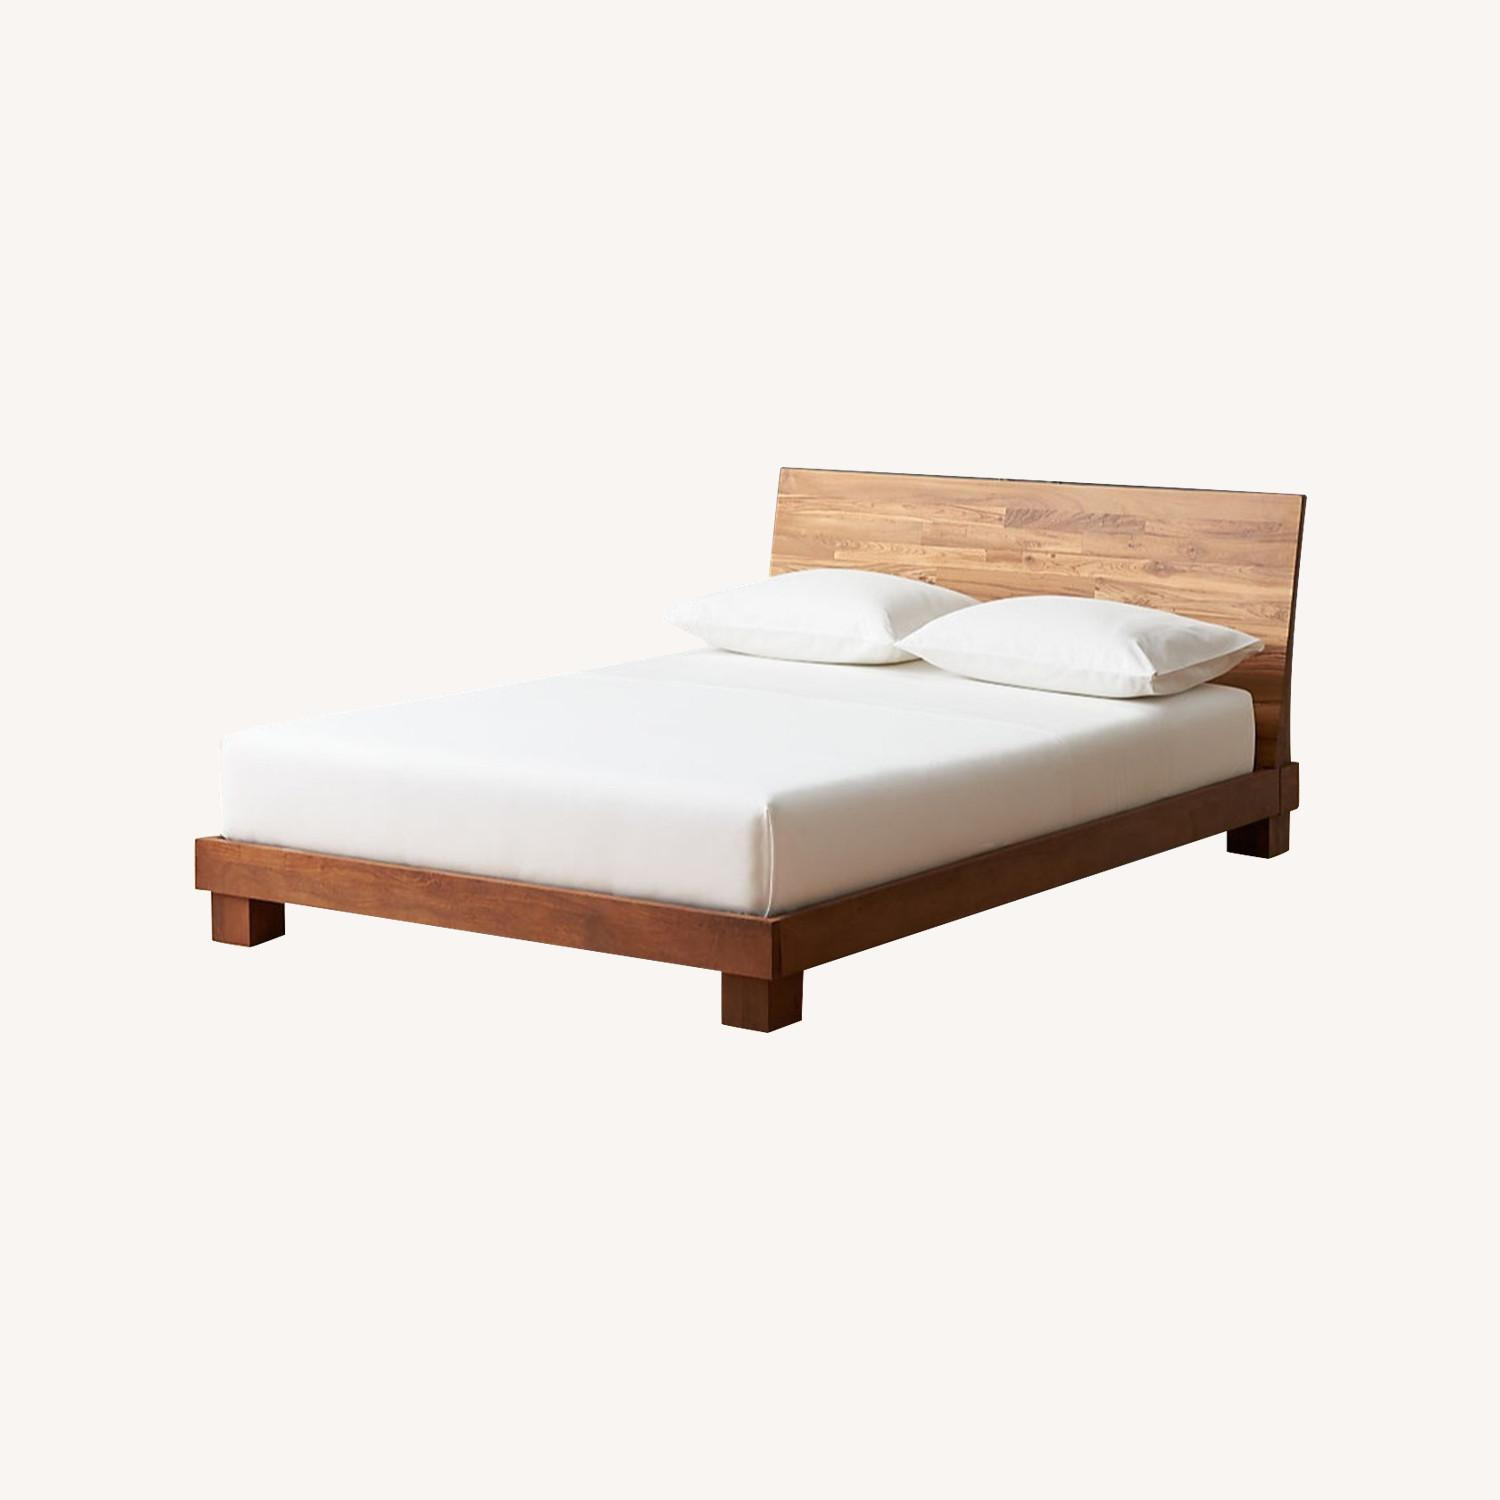 CB2 Dondra Teak Full Bed - image-0